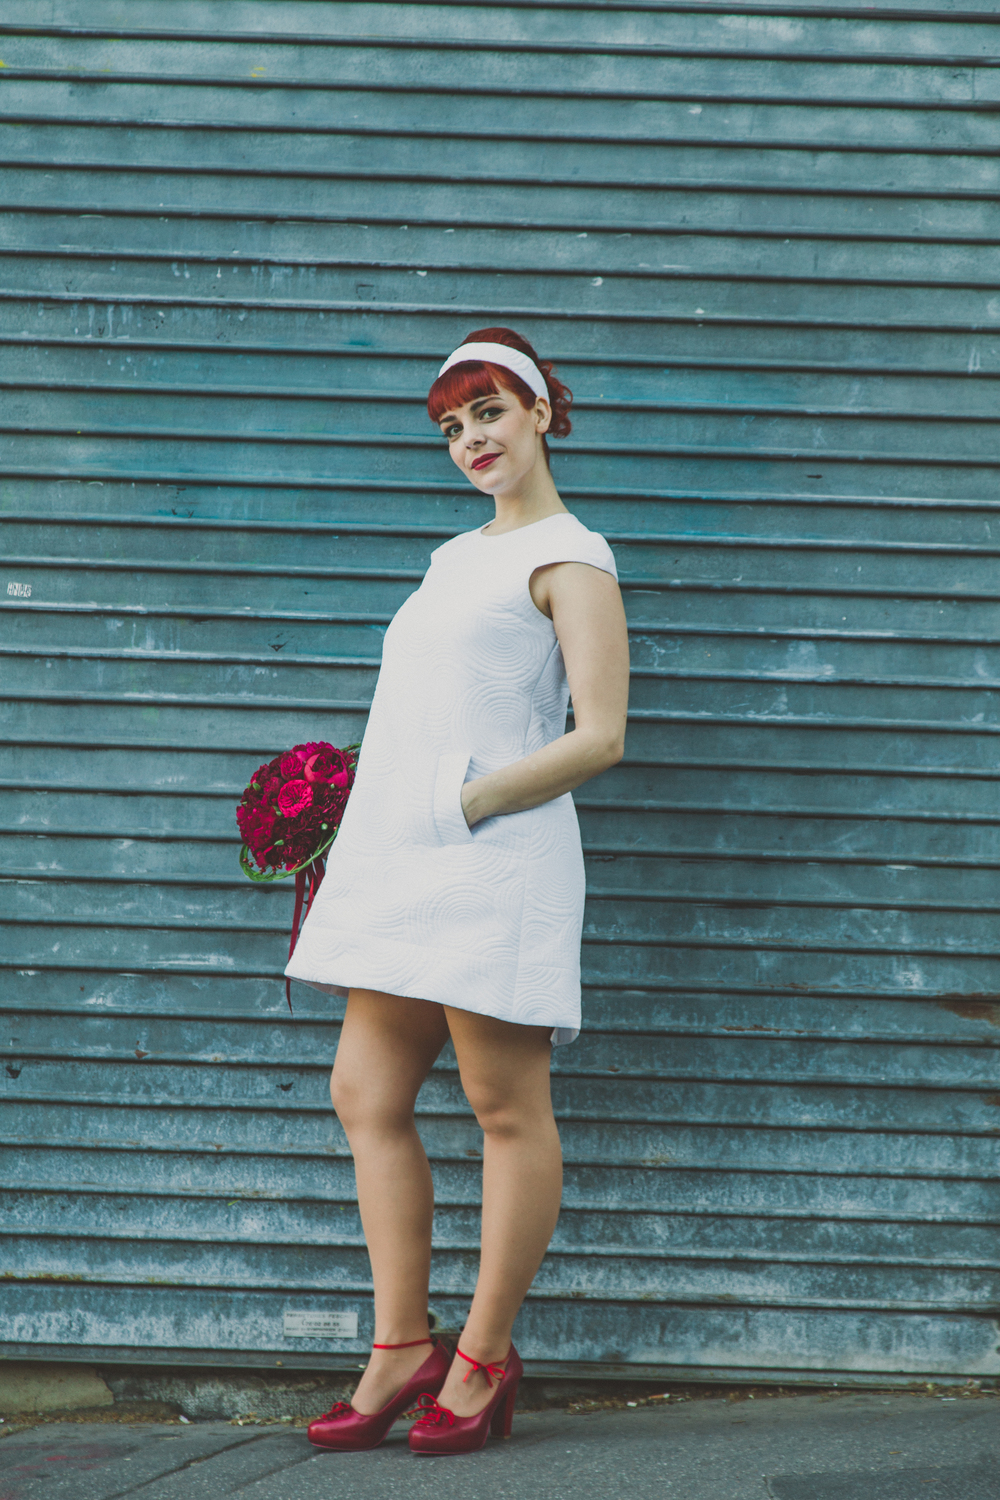 Maquilleuse-Mariage-retro-Grenoble-11.jpg